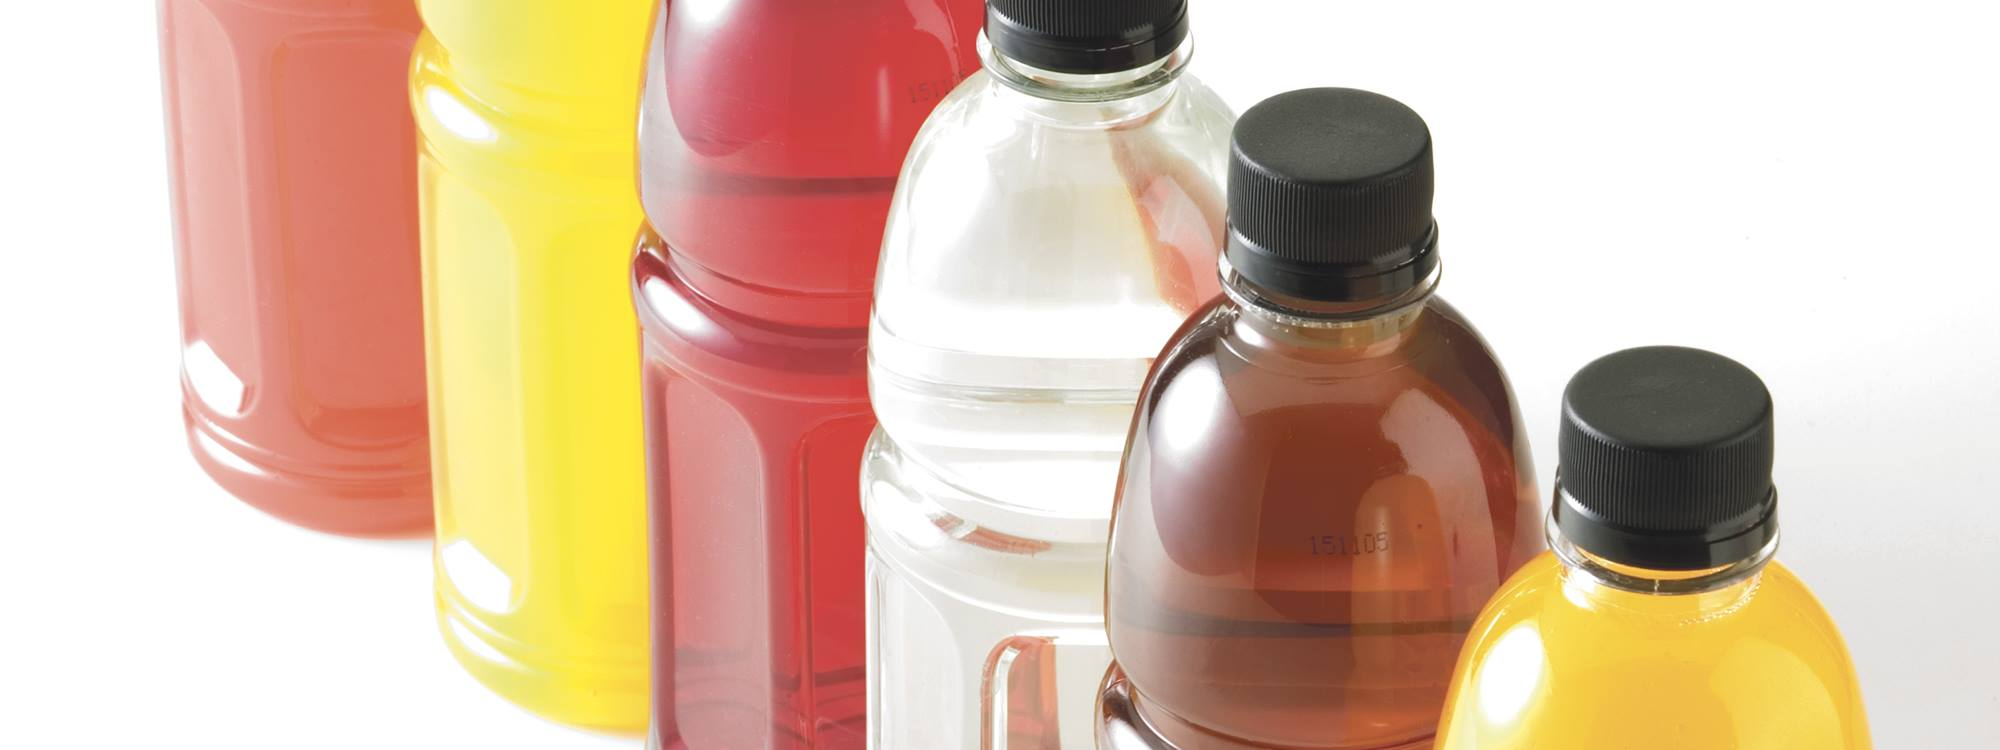 High-protein clear beverages with whey for sports consumers